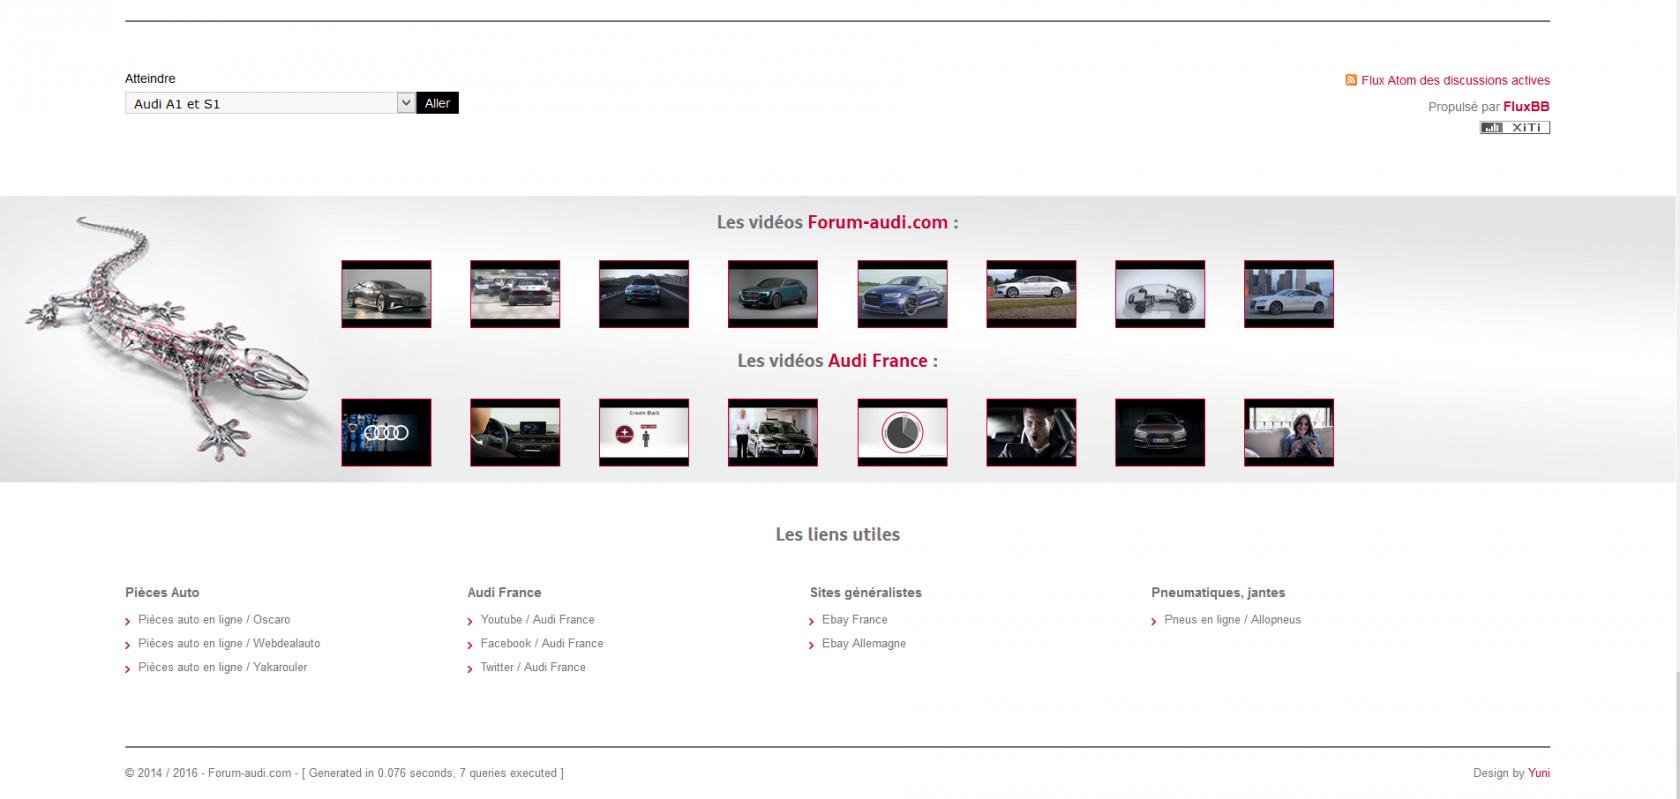 videowall-footer-forum-audi-avec-chaine-du-forum.jpeg